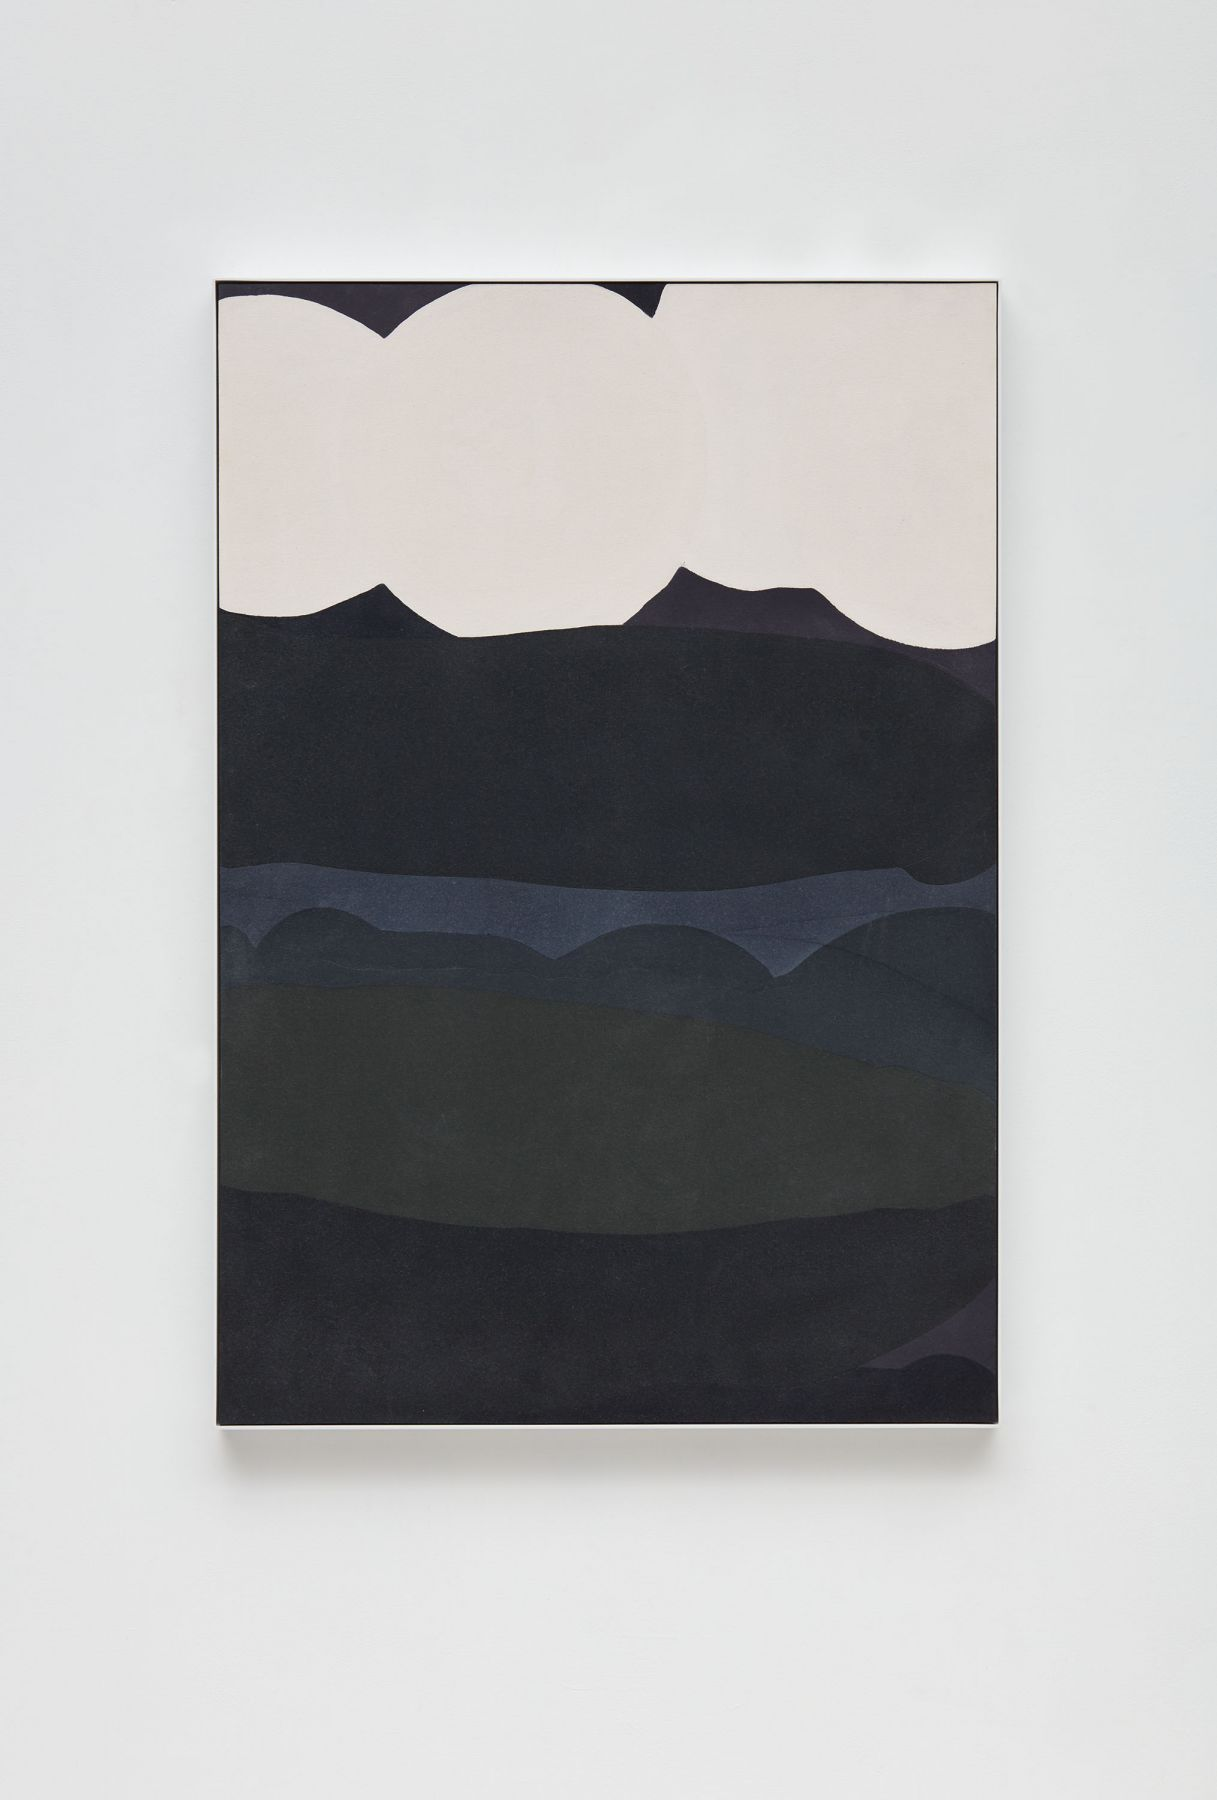 a layered abstract painting of dark colors by anthony pearson